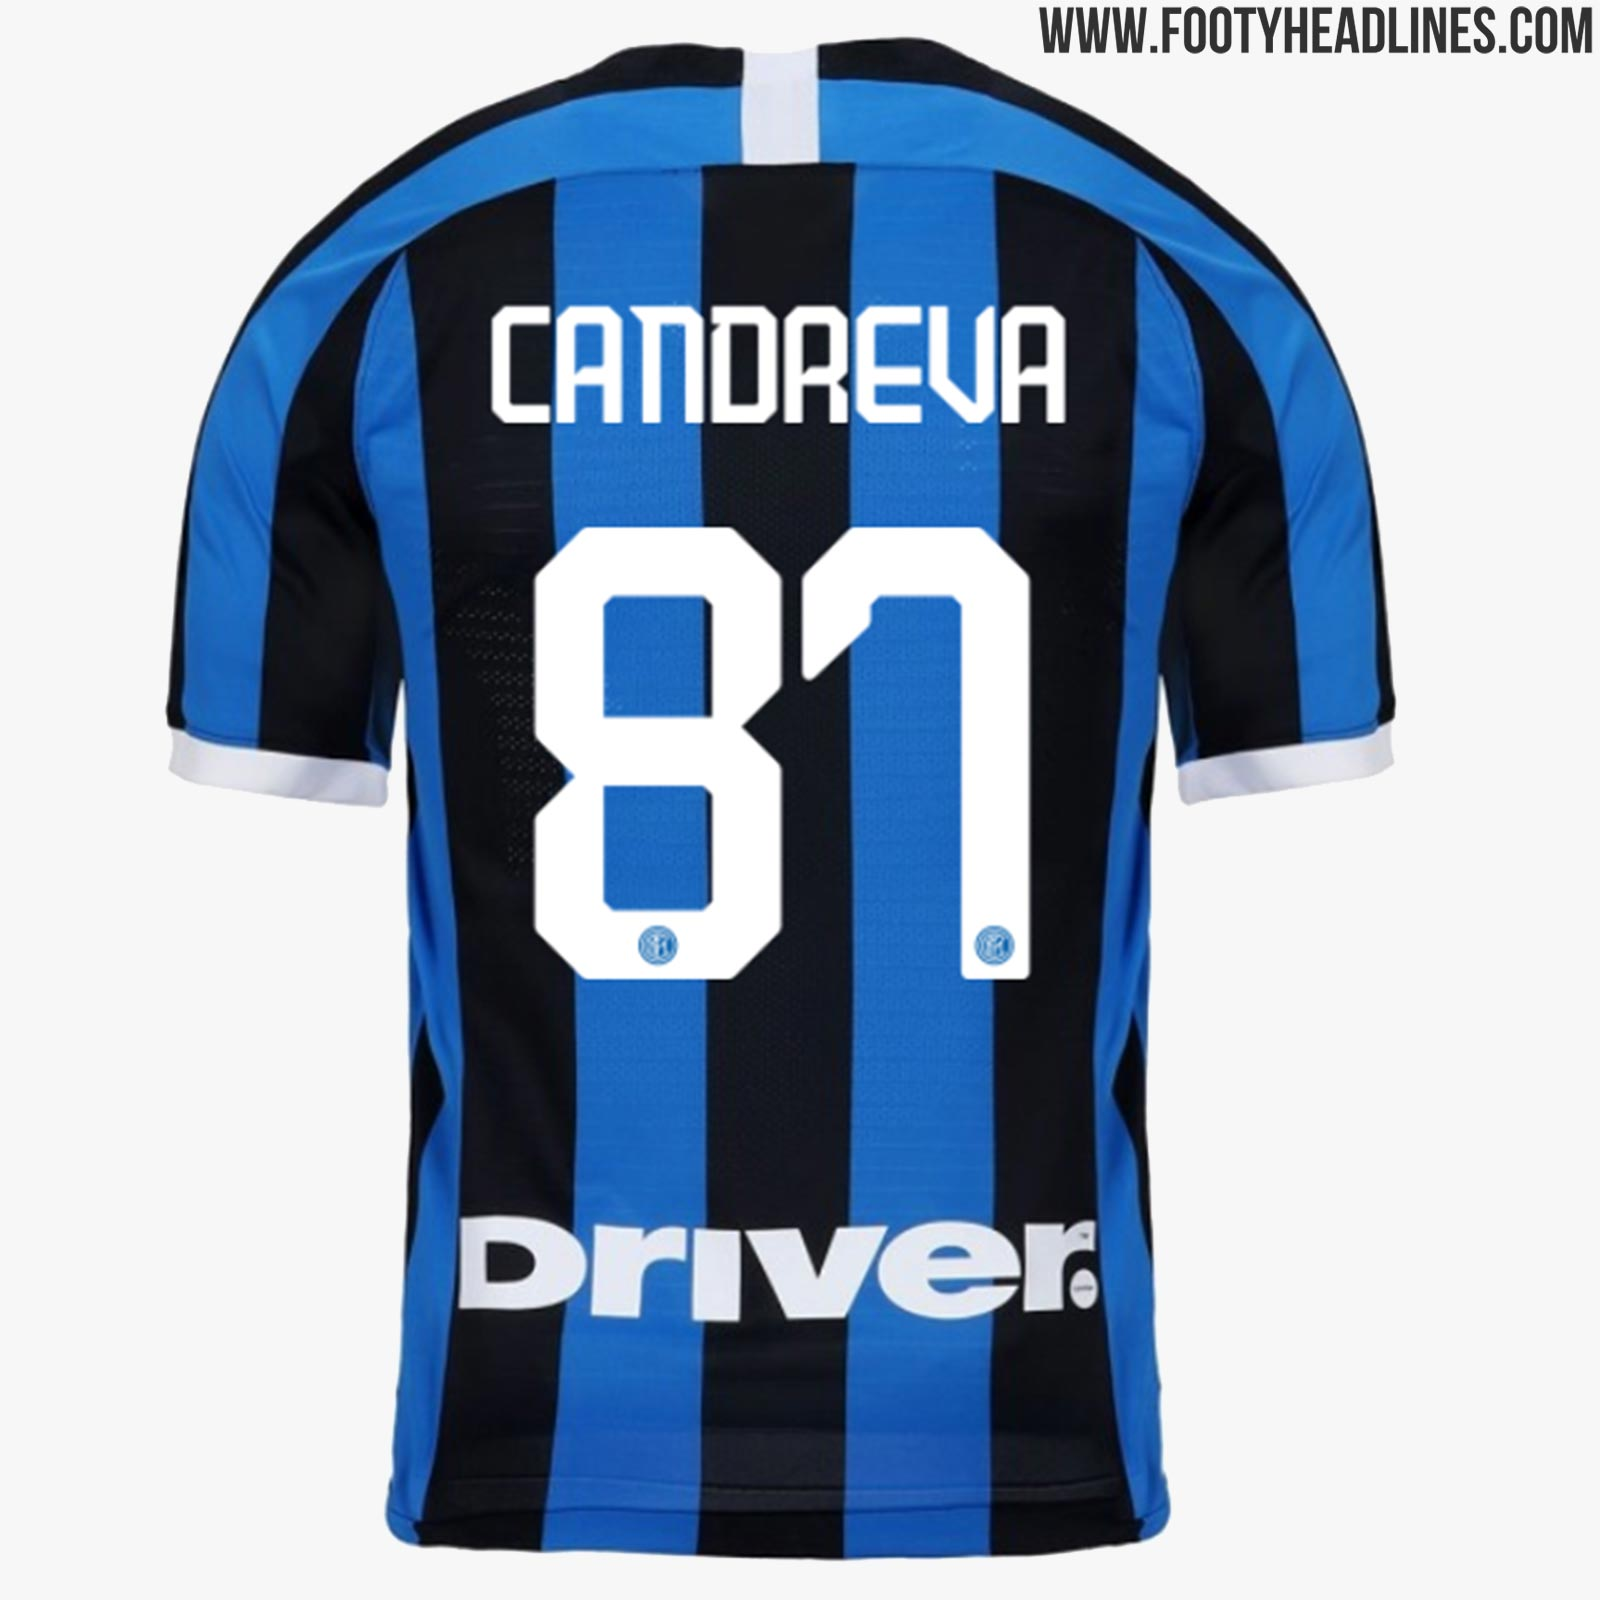 buy online bf1e4 60a1a Nike Inter Milan 19-20 Kit Font Released - Footy Headlines